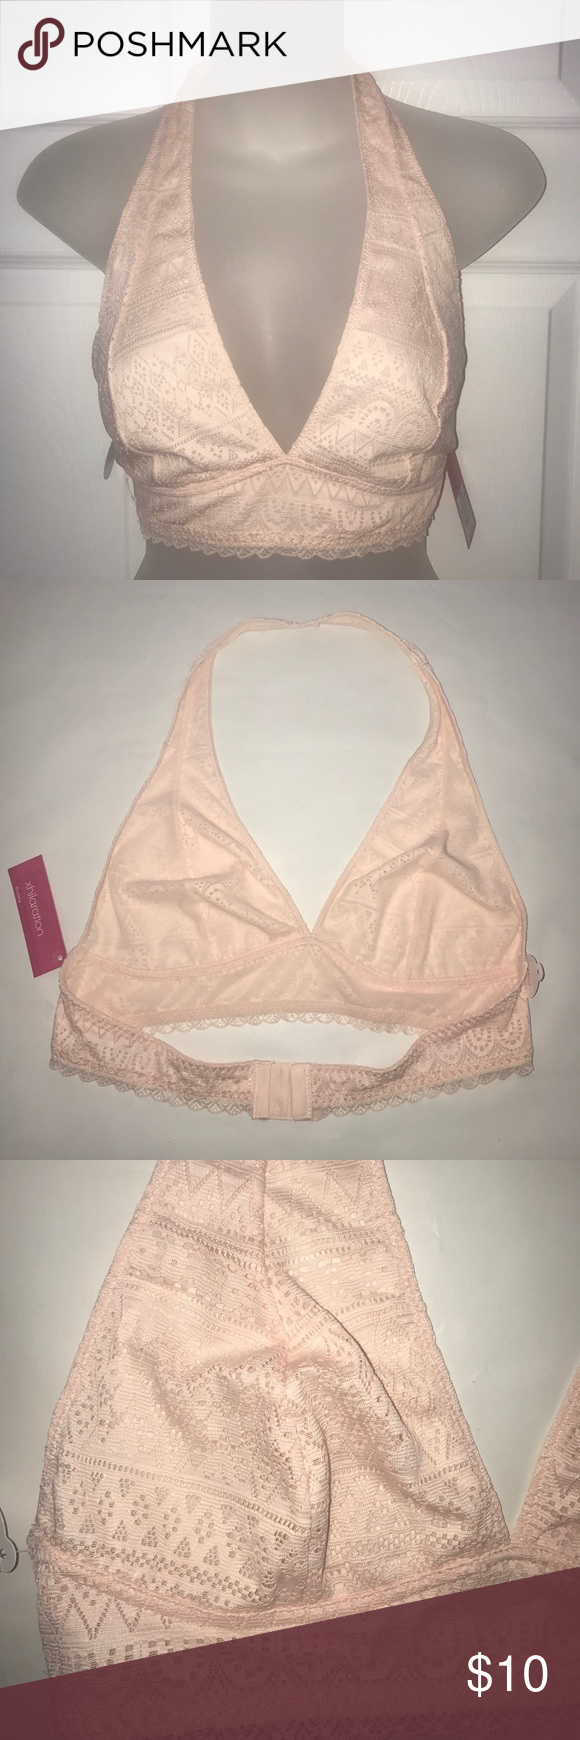 9436781da9 NWT lace halter bralette Gorgeous soft peach color. Adjustable back band.  Lined but not padded. Xhilaration Intimates   Sleepwear Bras